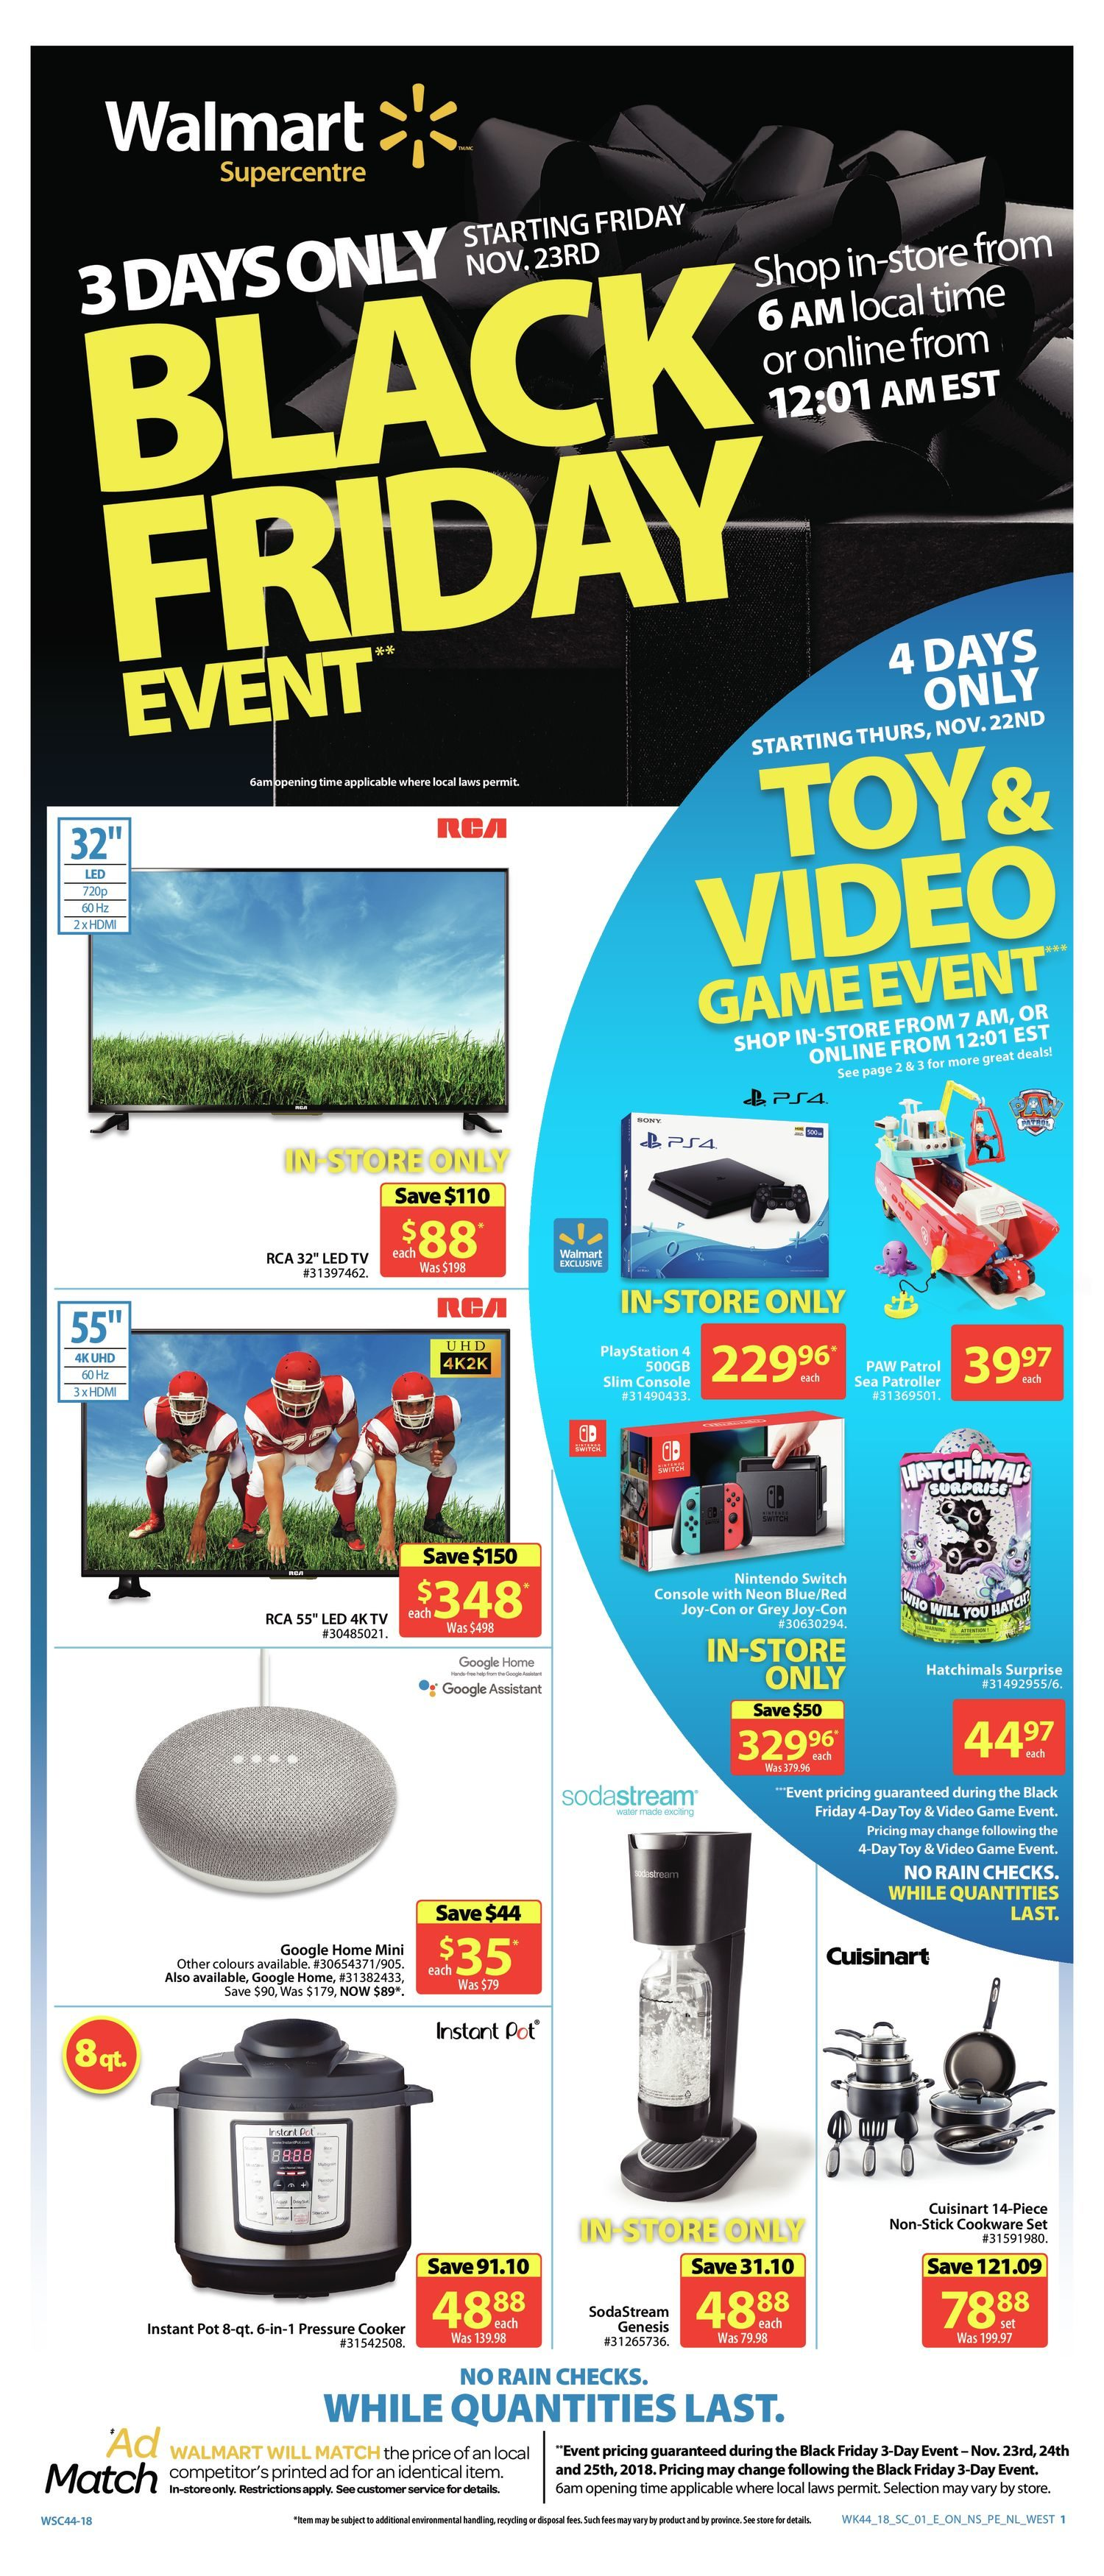 Walmart Weekly Flyer - 3 Days Only - Black Friday Event